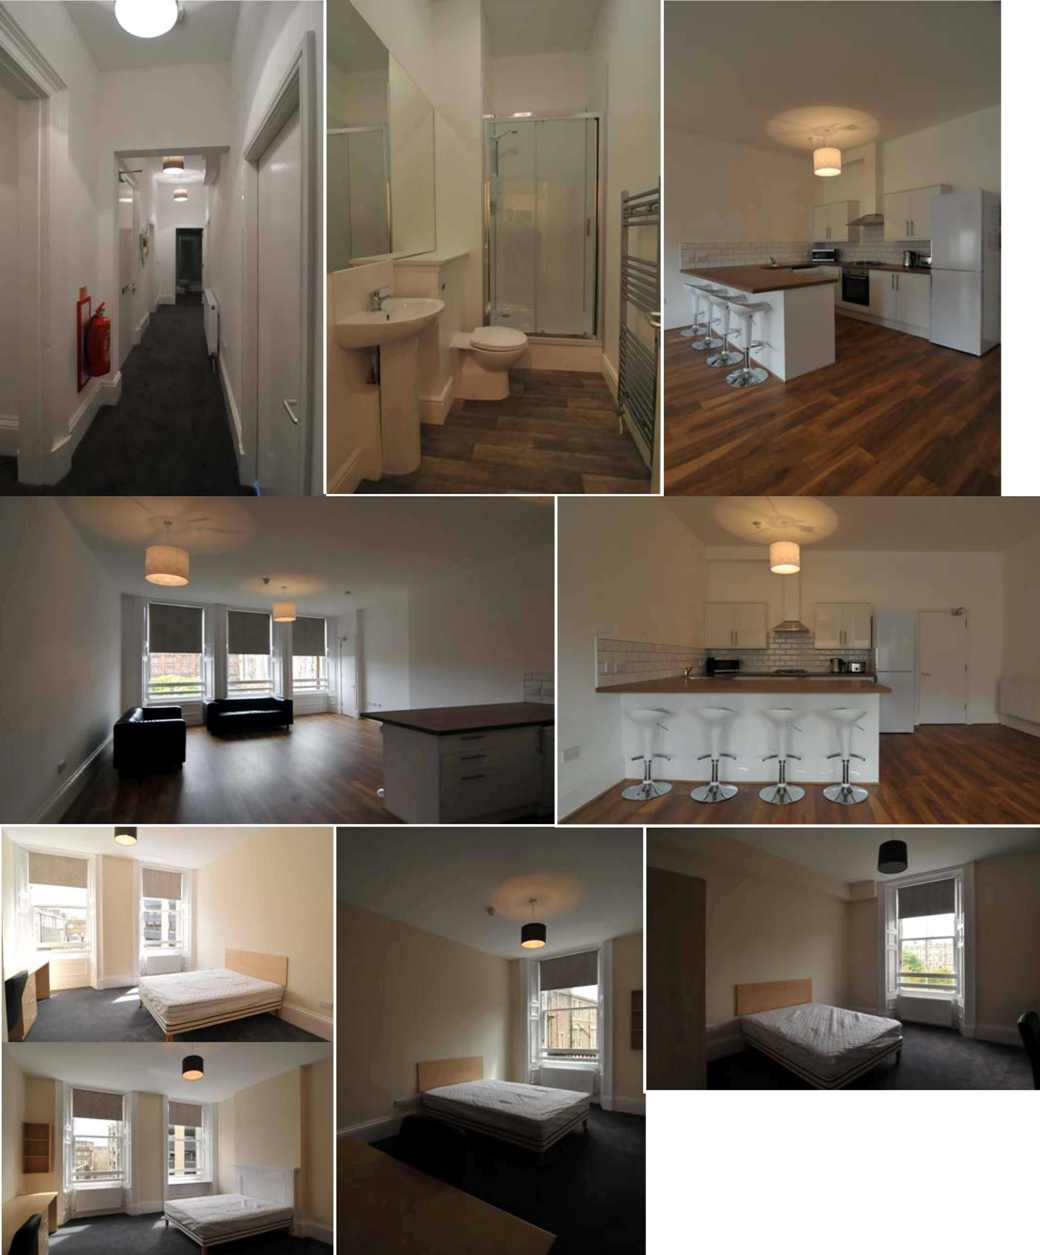 4 Bedroom Student Flats For Rent In Dundee